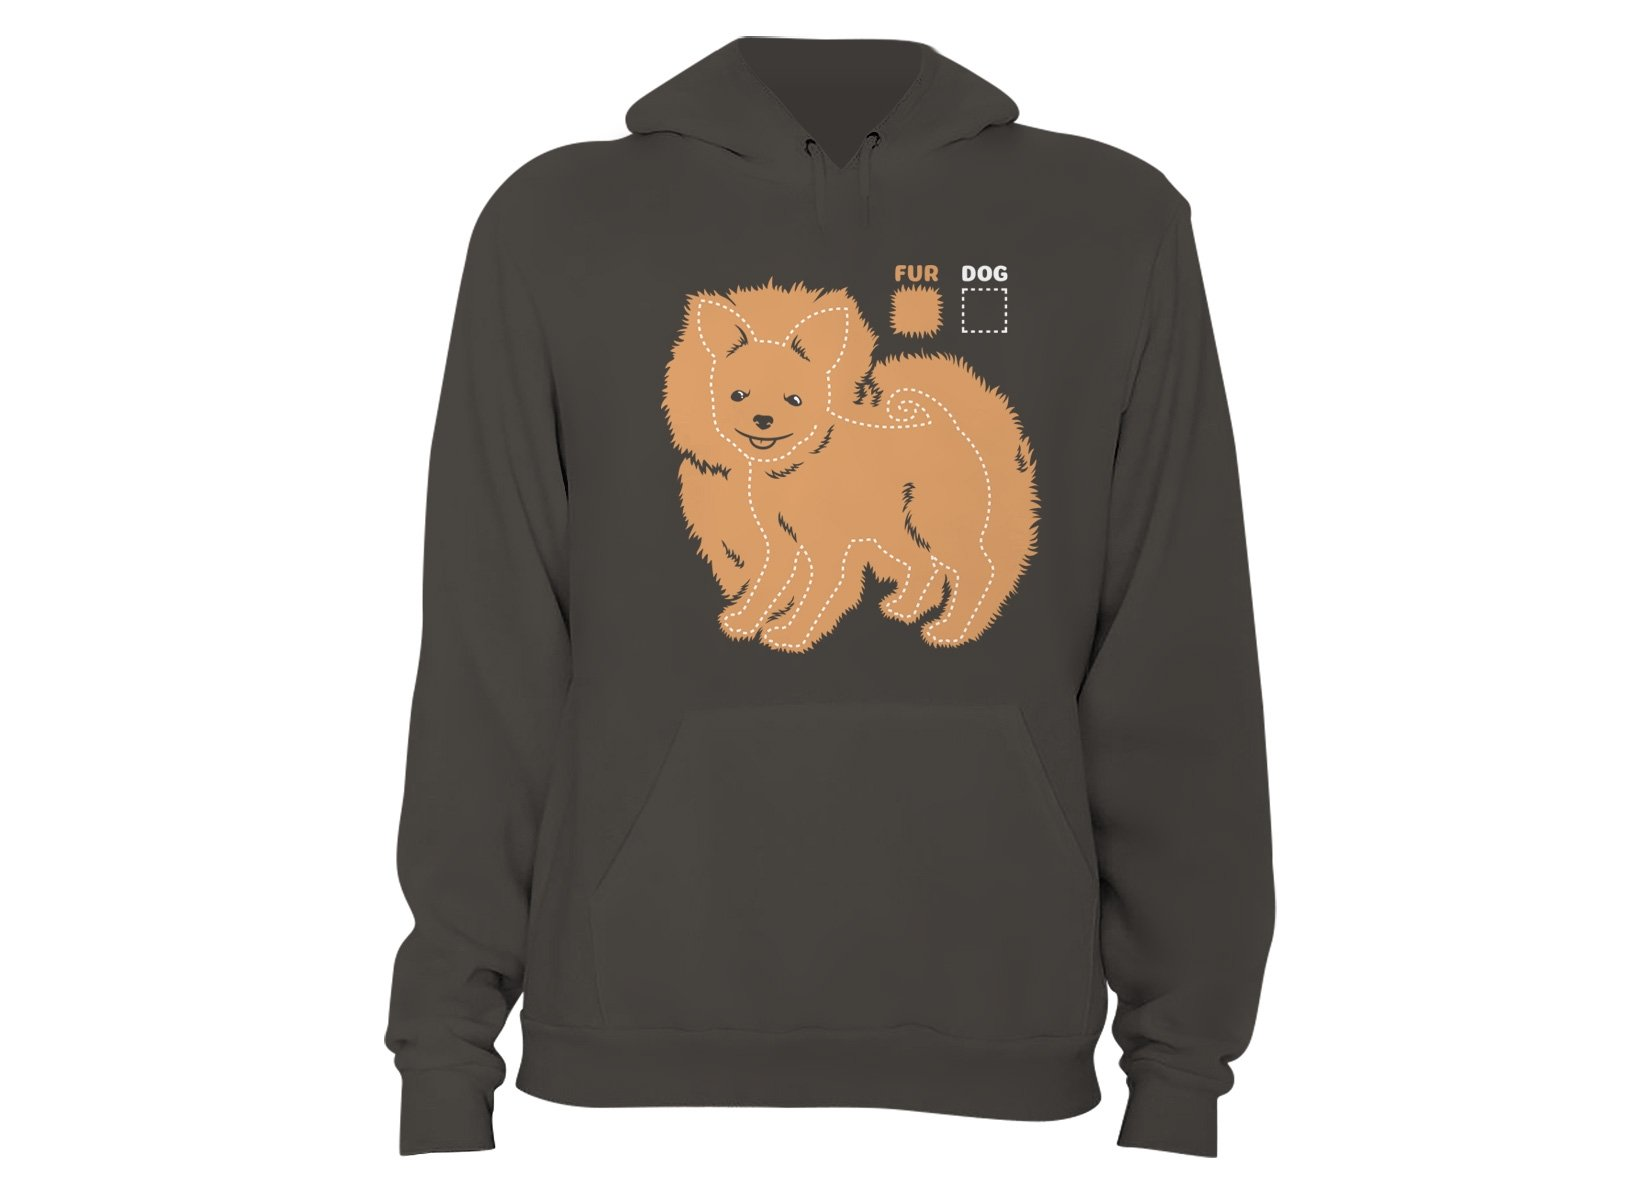 Dog vs Fur Pomeranian on Hoodie